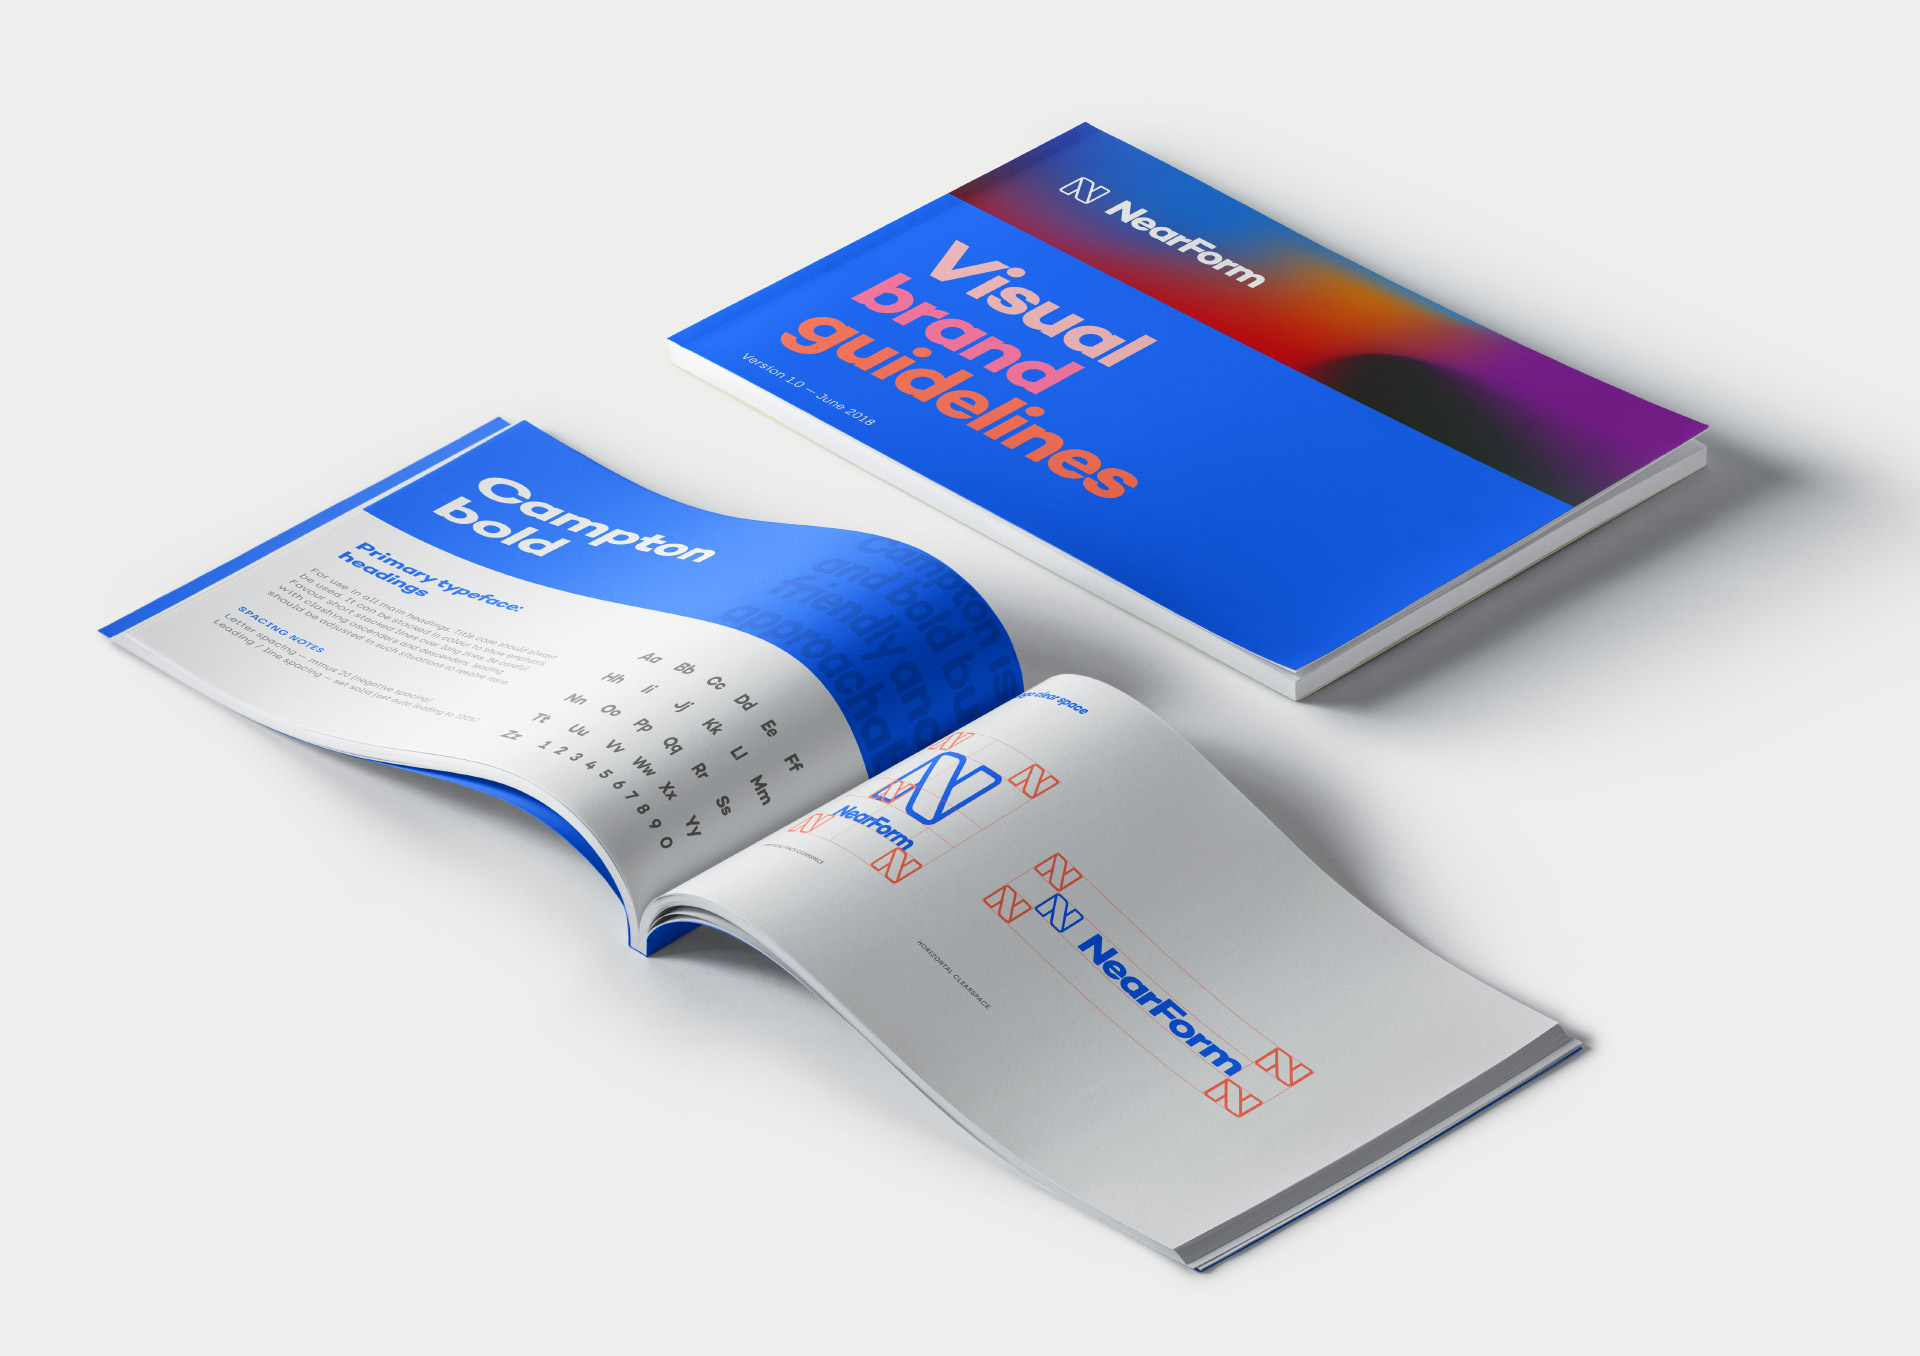 NF_brand-guidelines-01_web